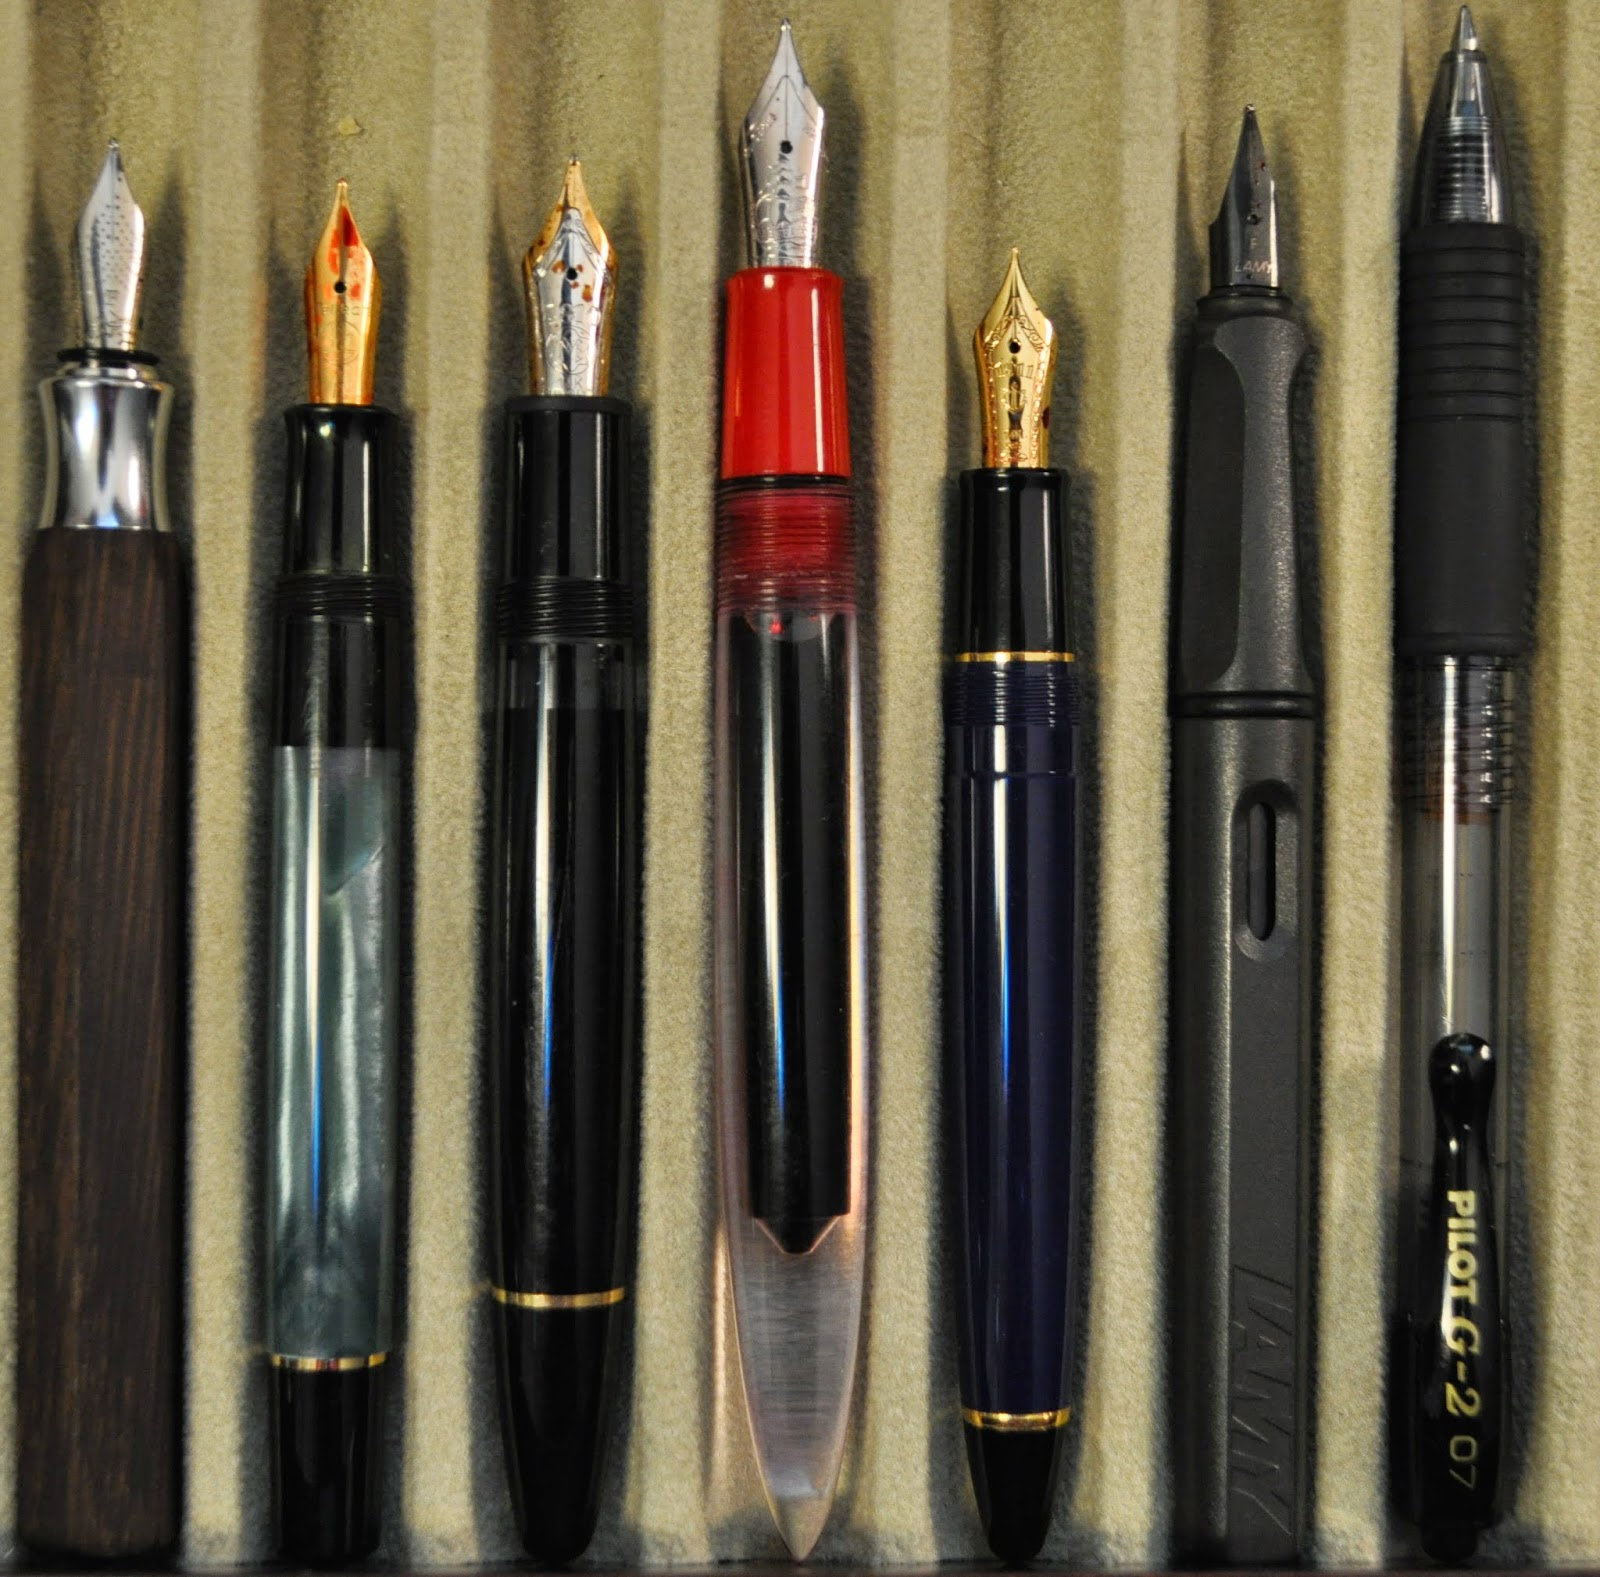 montblanc vs faber castell Faber castell's e-motion range have distinctive chunky barrels, which are incredibly comfortable to hold the e-motion collection comes in a wide variety of finishes: pearwood in a choice of three colours, a white satin resin with an engraved 'rhombus' design and laser engraved, polished resin, in .